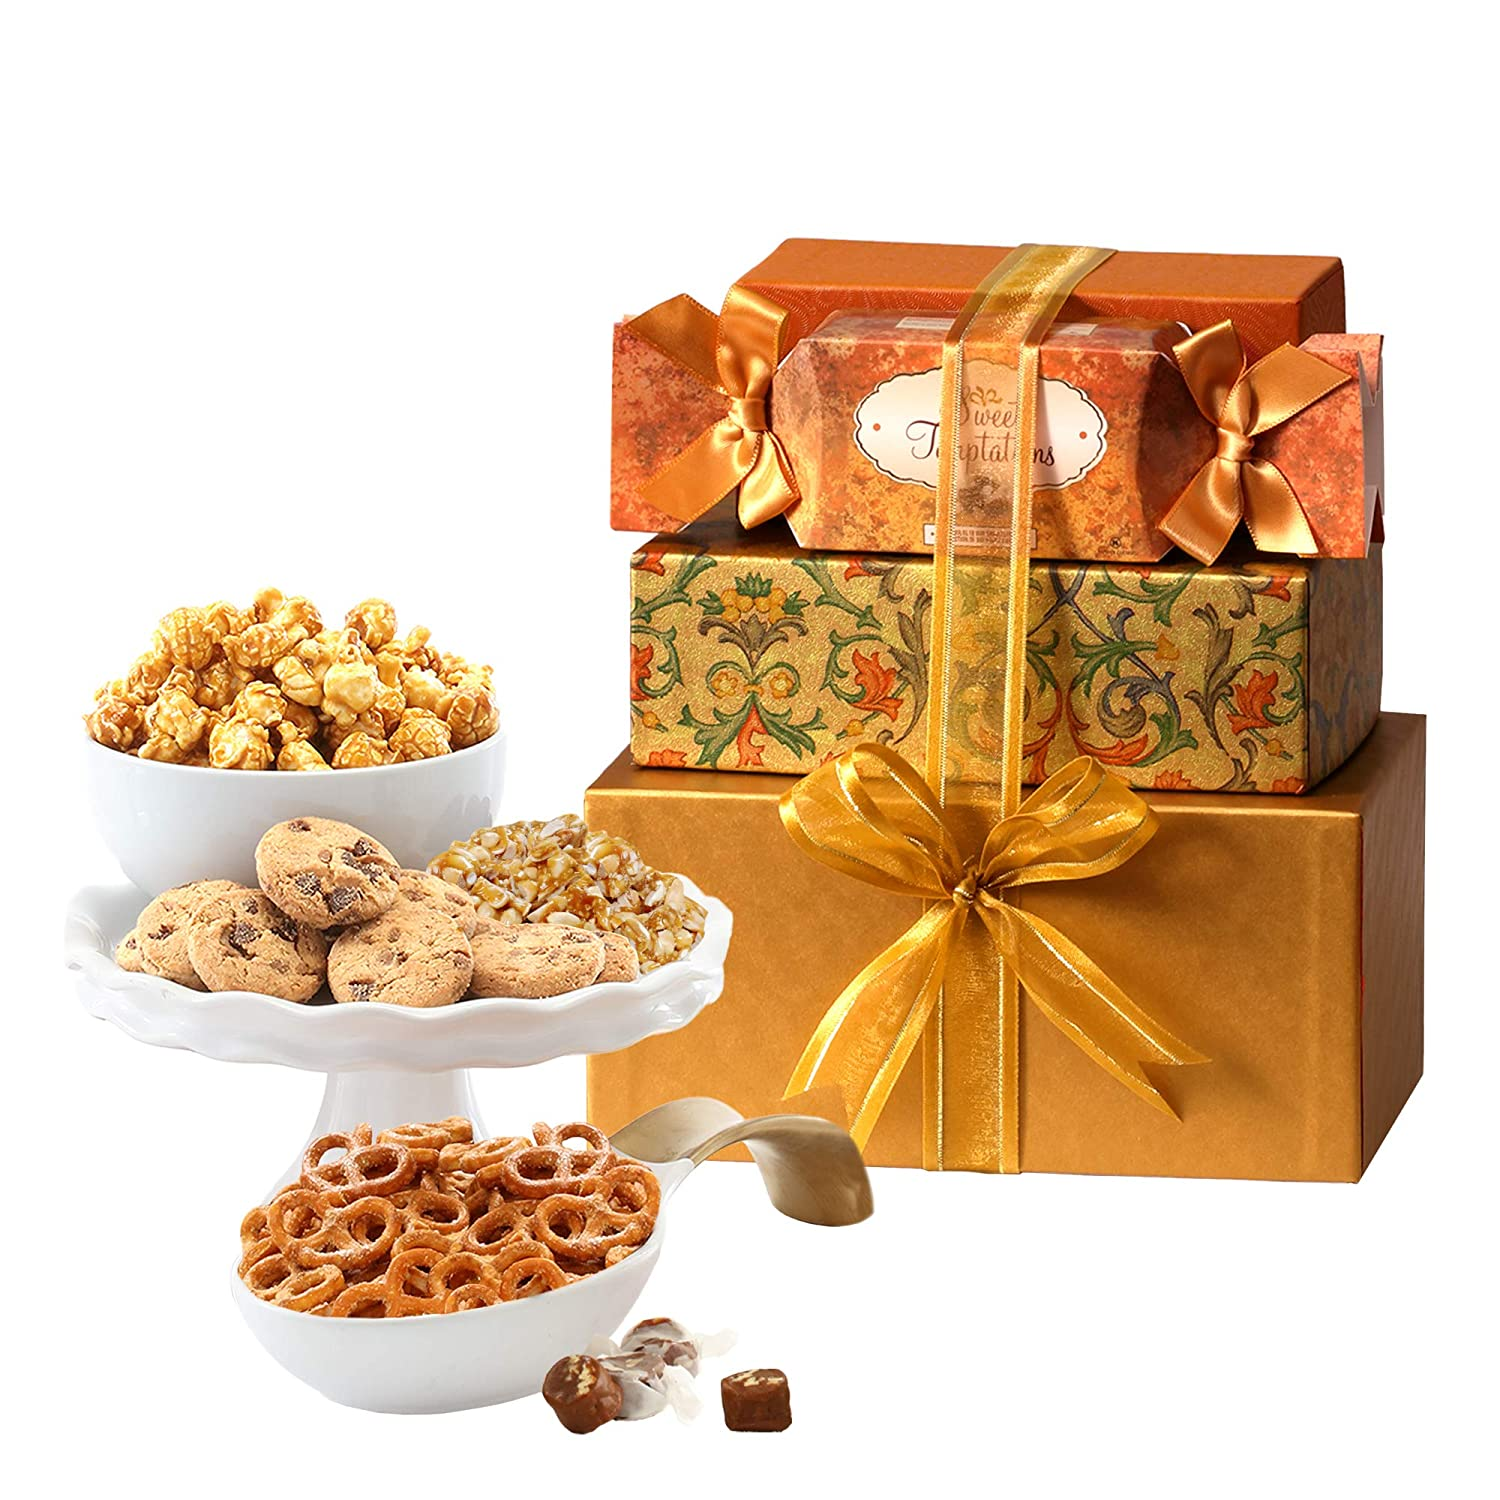 Broadway Basketeers Snackers Heaven Valentine's Day Gift Tower - Gift Basket (Kosher Certified)